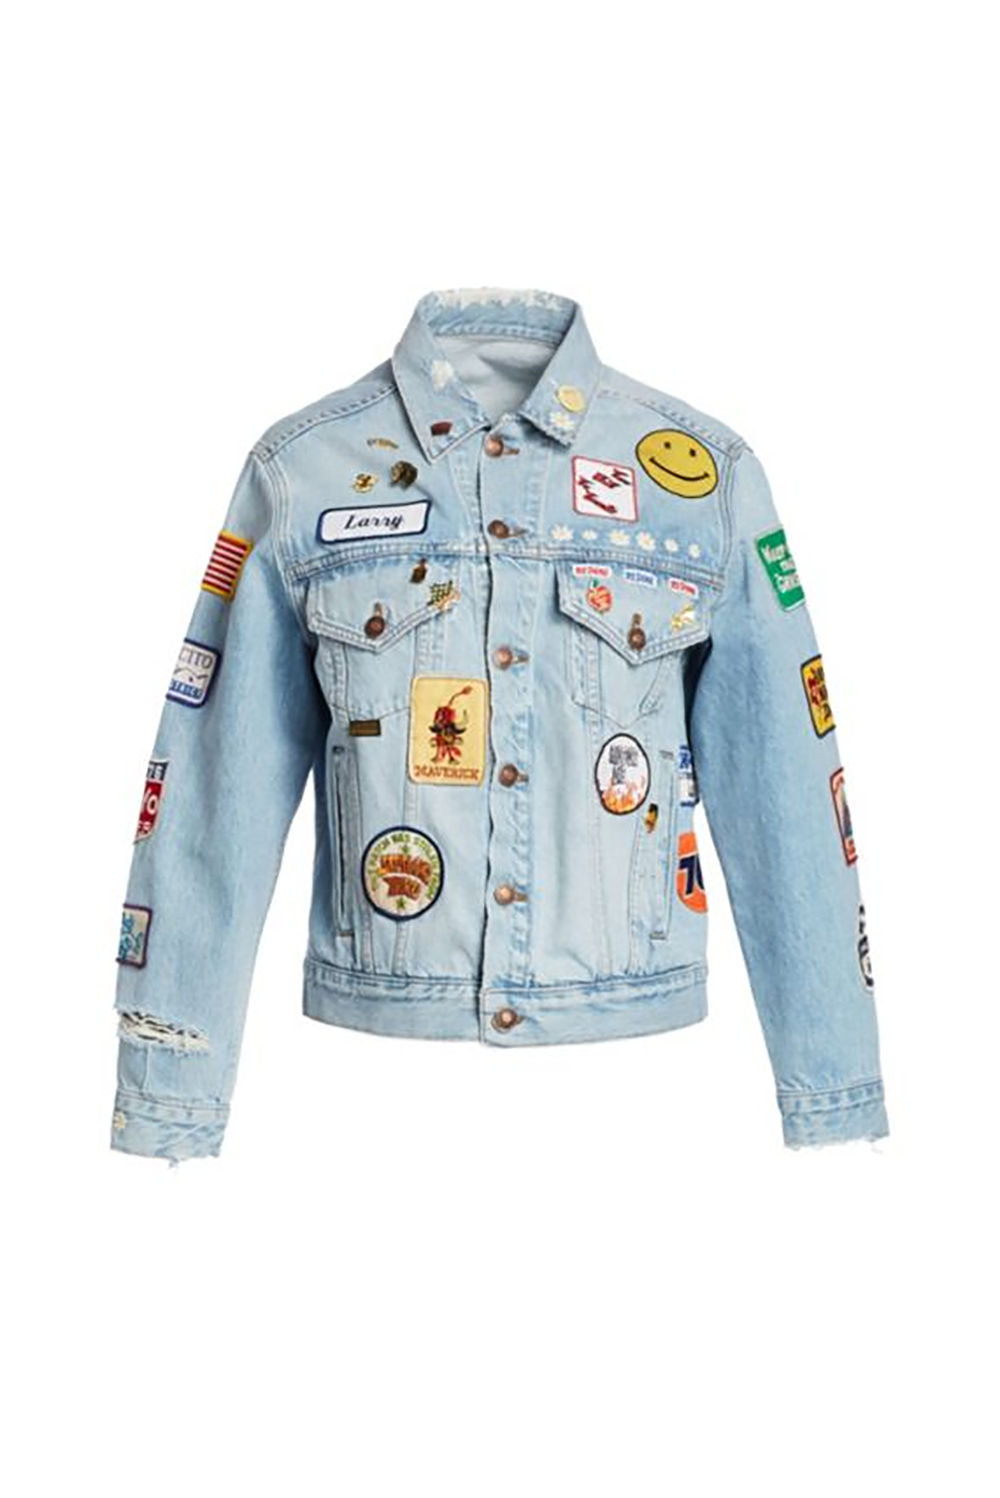 Oversized Patch Trucker Jean Jacket.